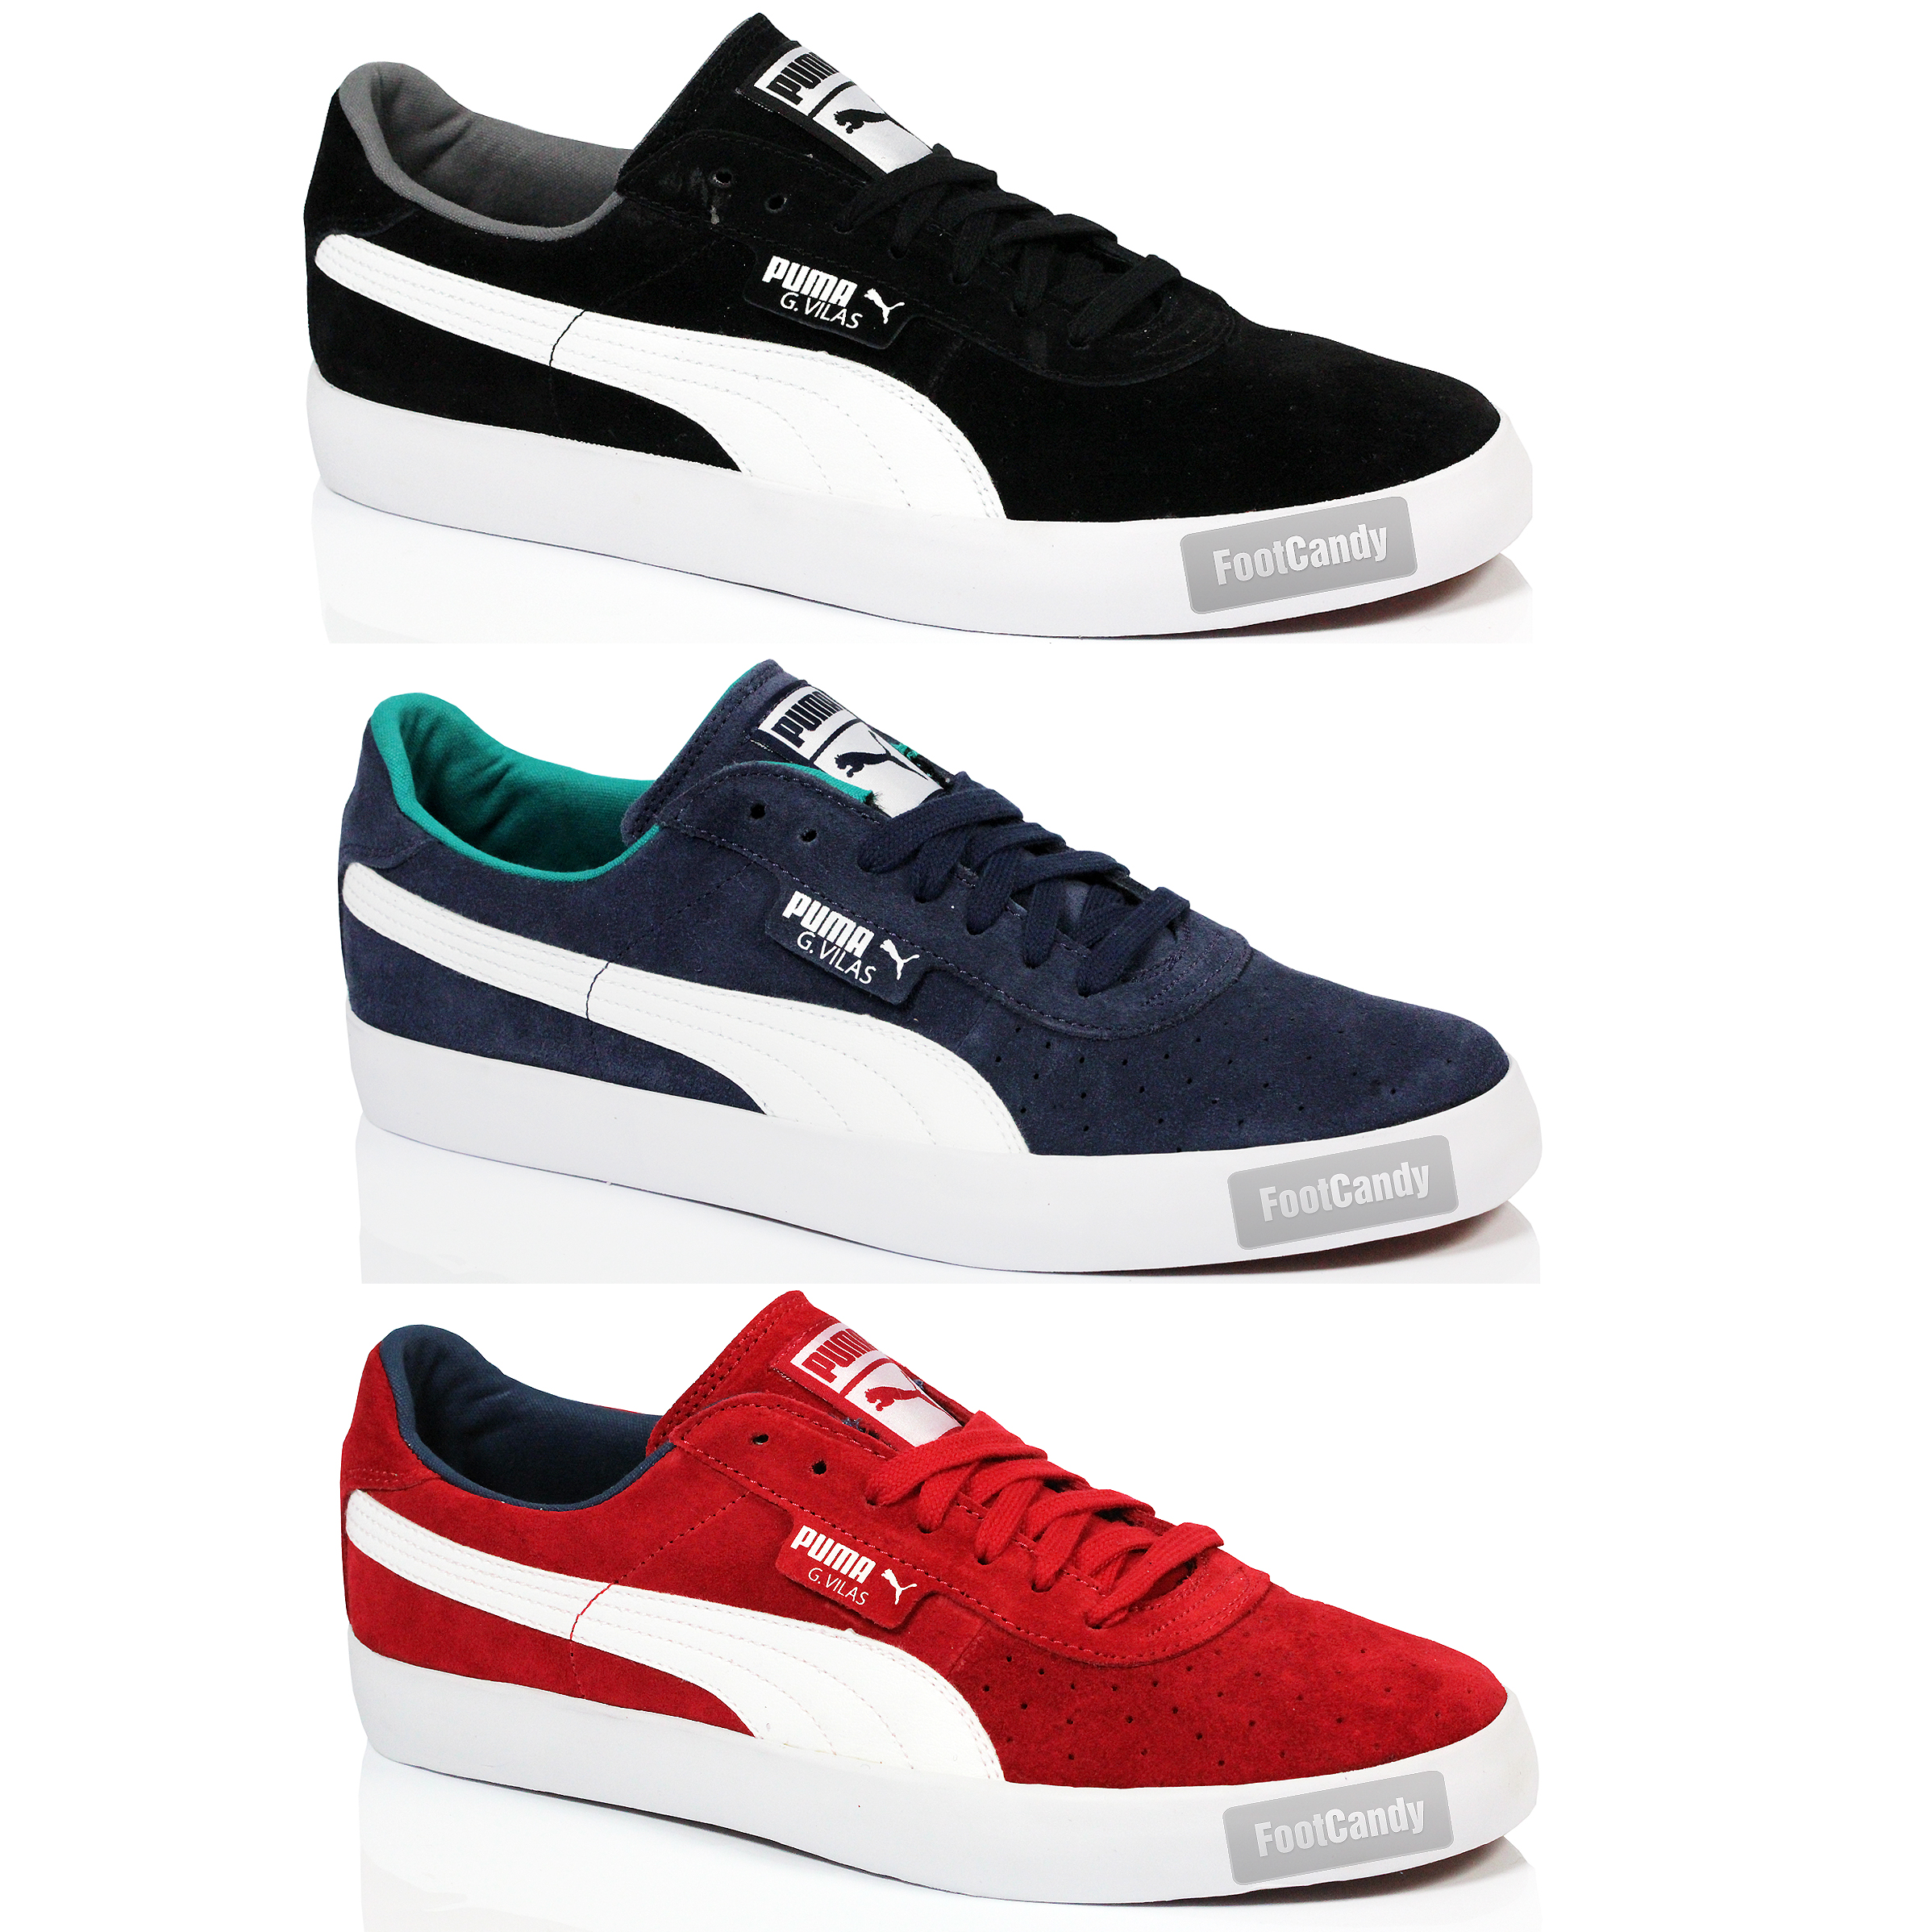 MENS-BOYS-G-VILAS-VULCANISED-LO-SUEDE-LEATHER-LACE-SPORTS-TRAINERS-SHOES-SIZE